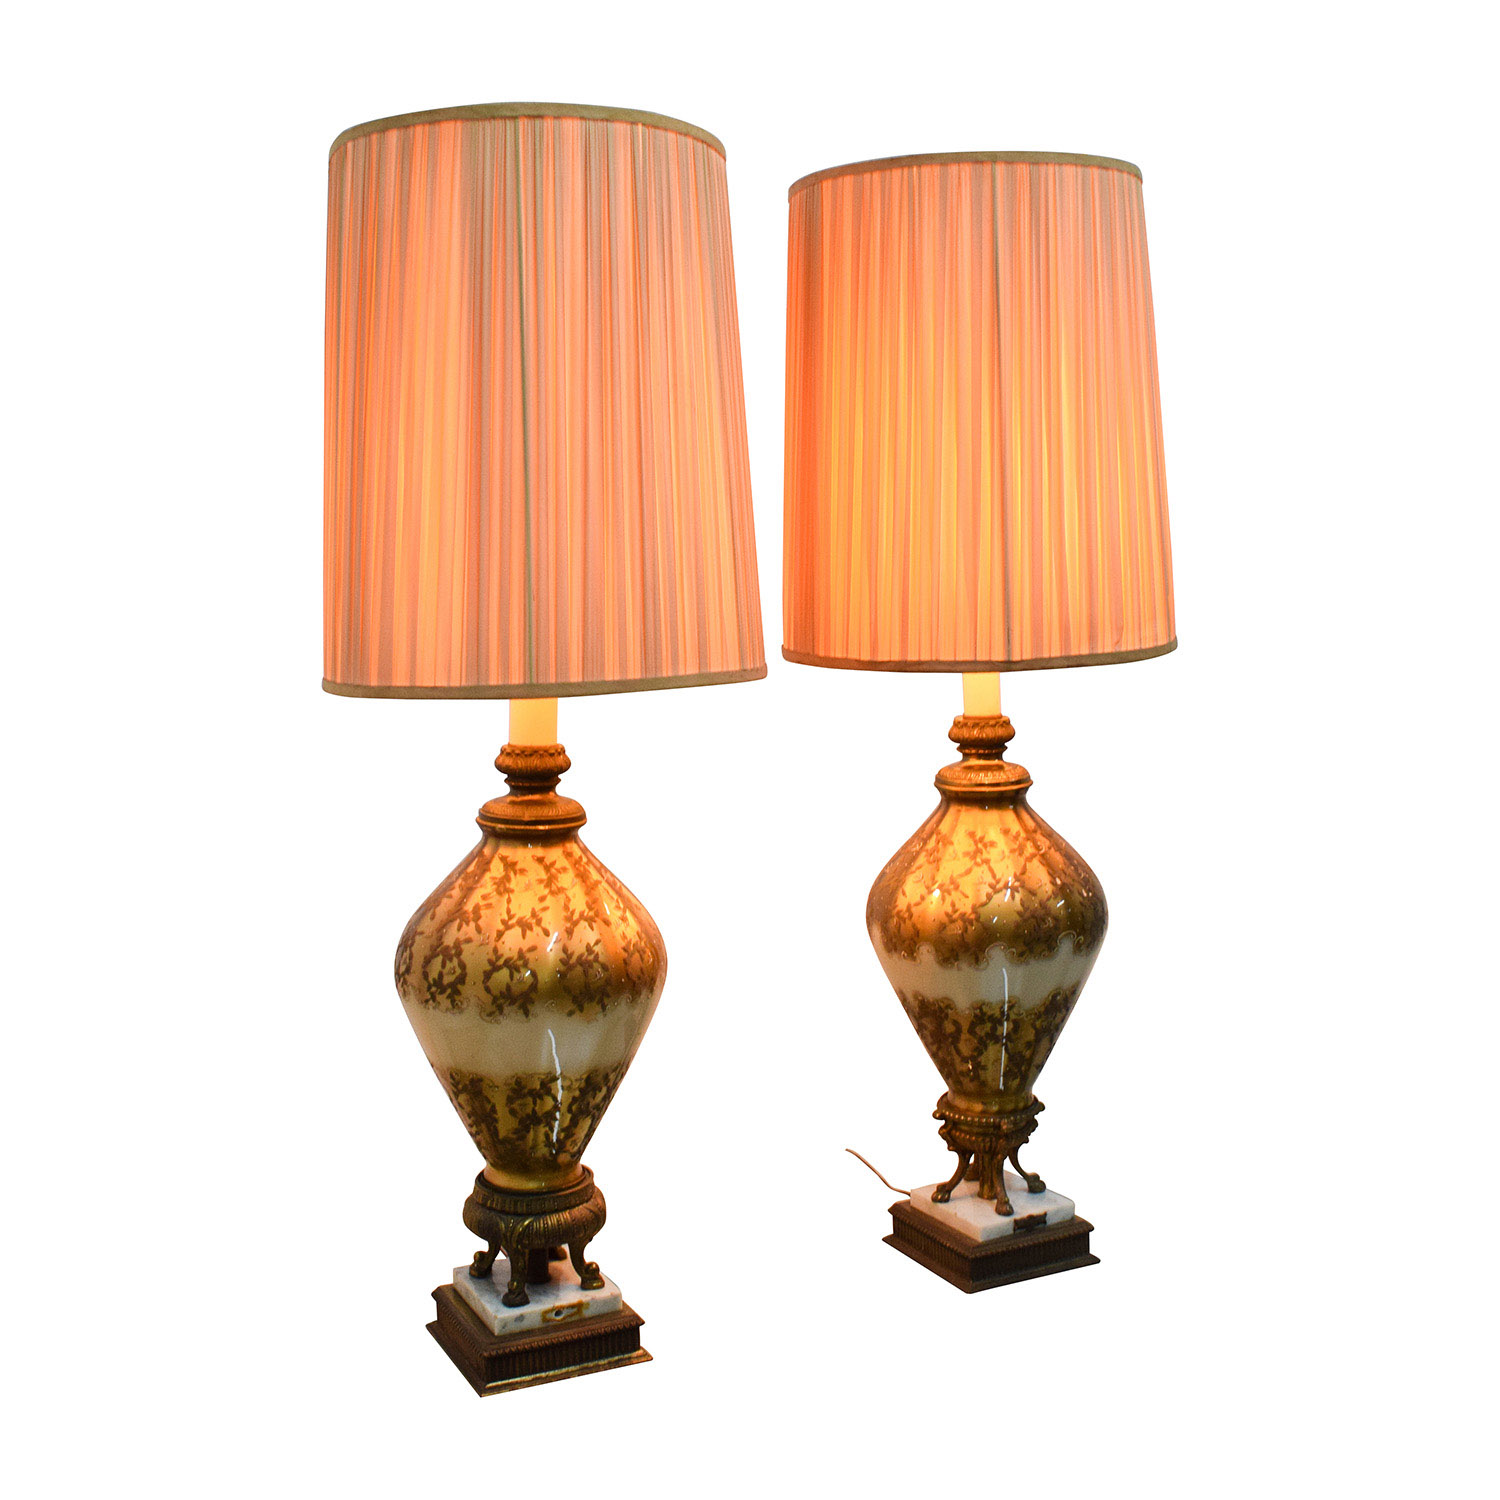 74% OFF - 1960's Gold and Cream Classic Lamp with Marble Base / Decor